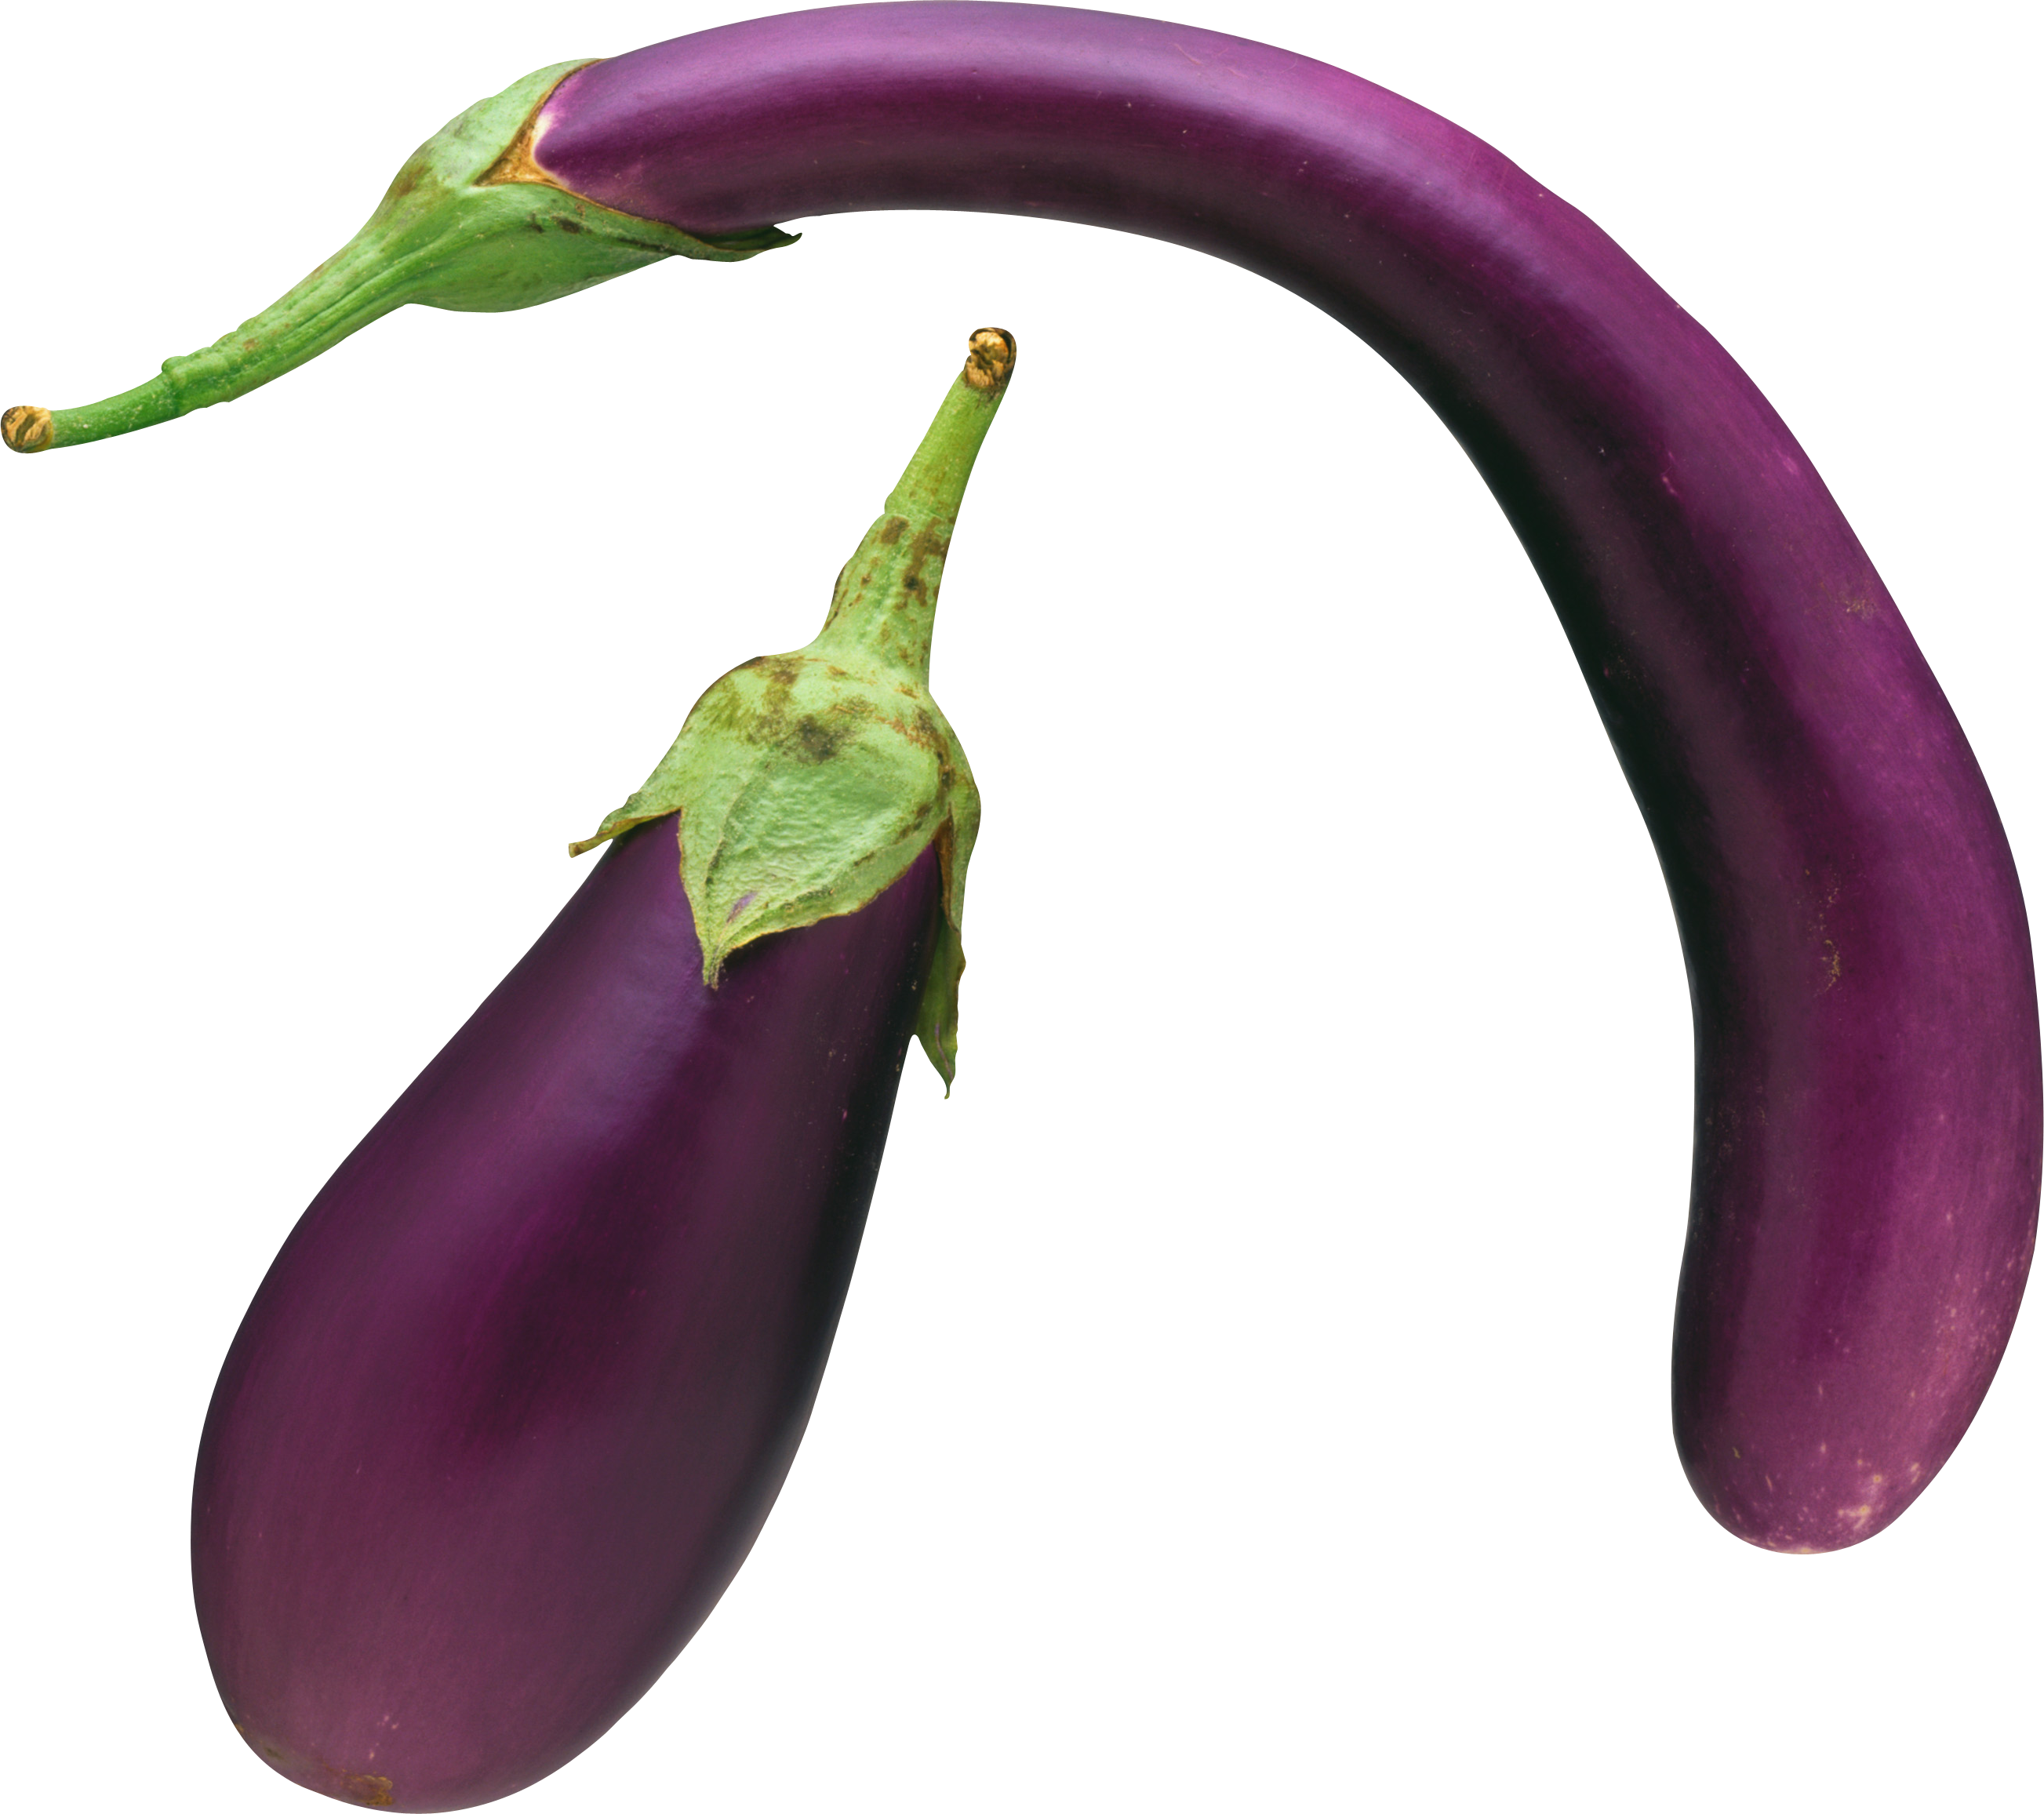 eggplant clipart single vegetable eggplant single vegetable transparent for download #29805